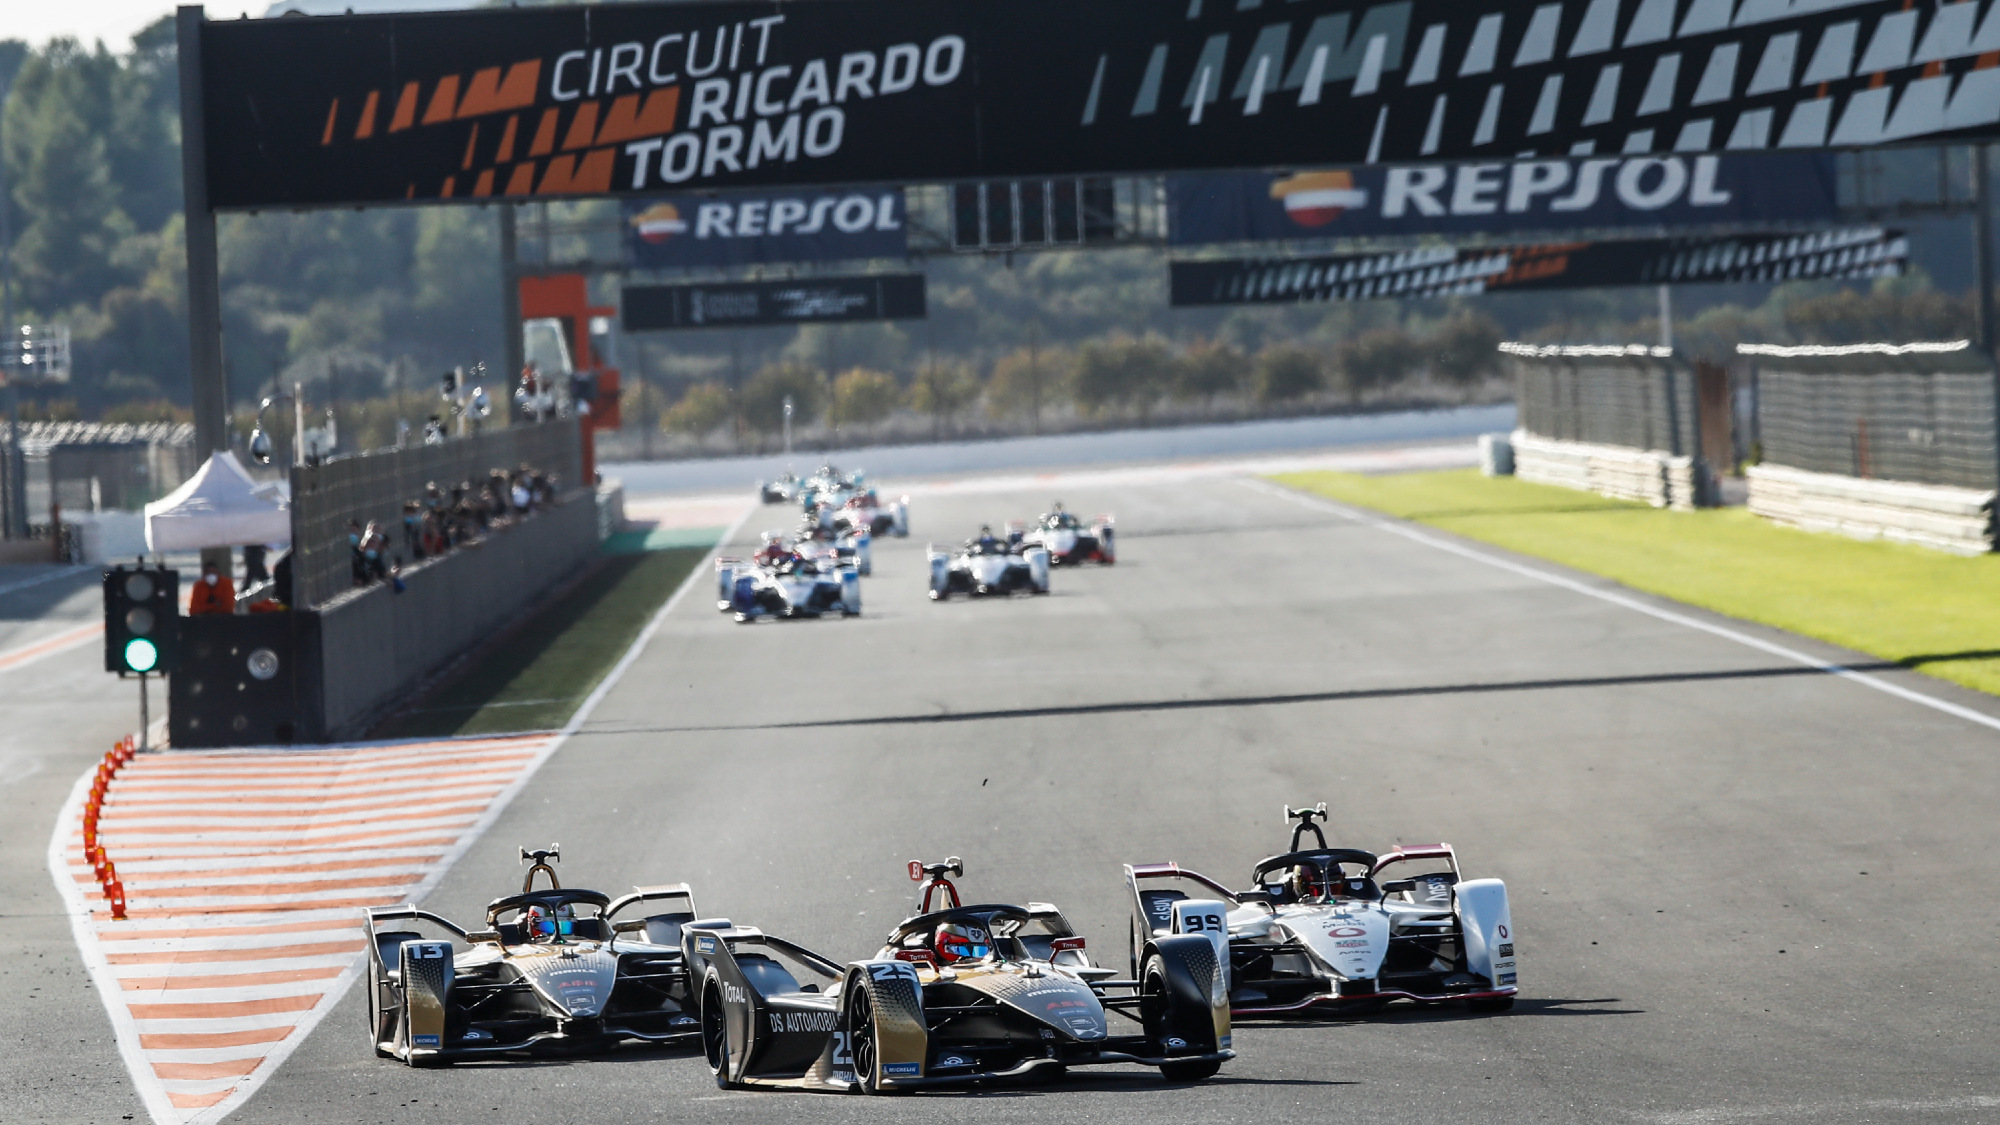 Formula E confirms 2020/21 calendar additions with first permanent circuit race